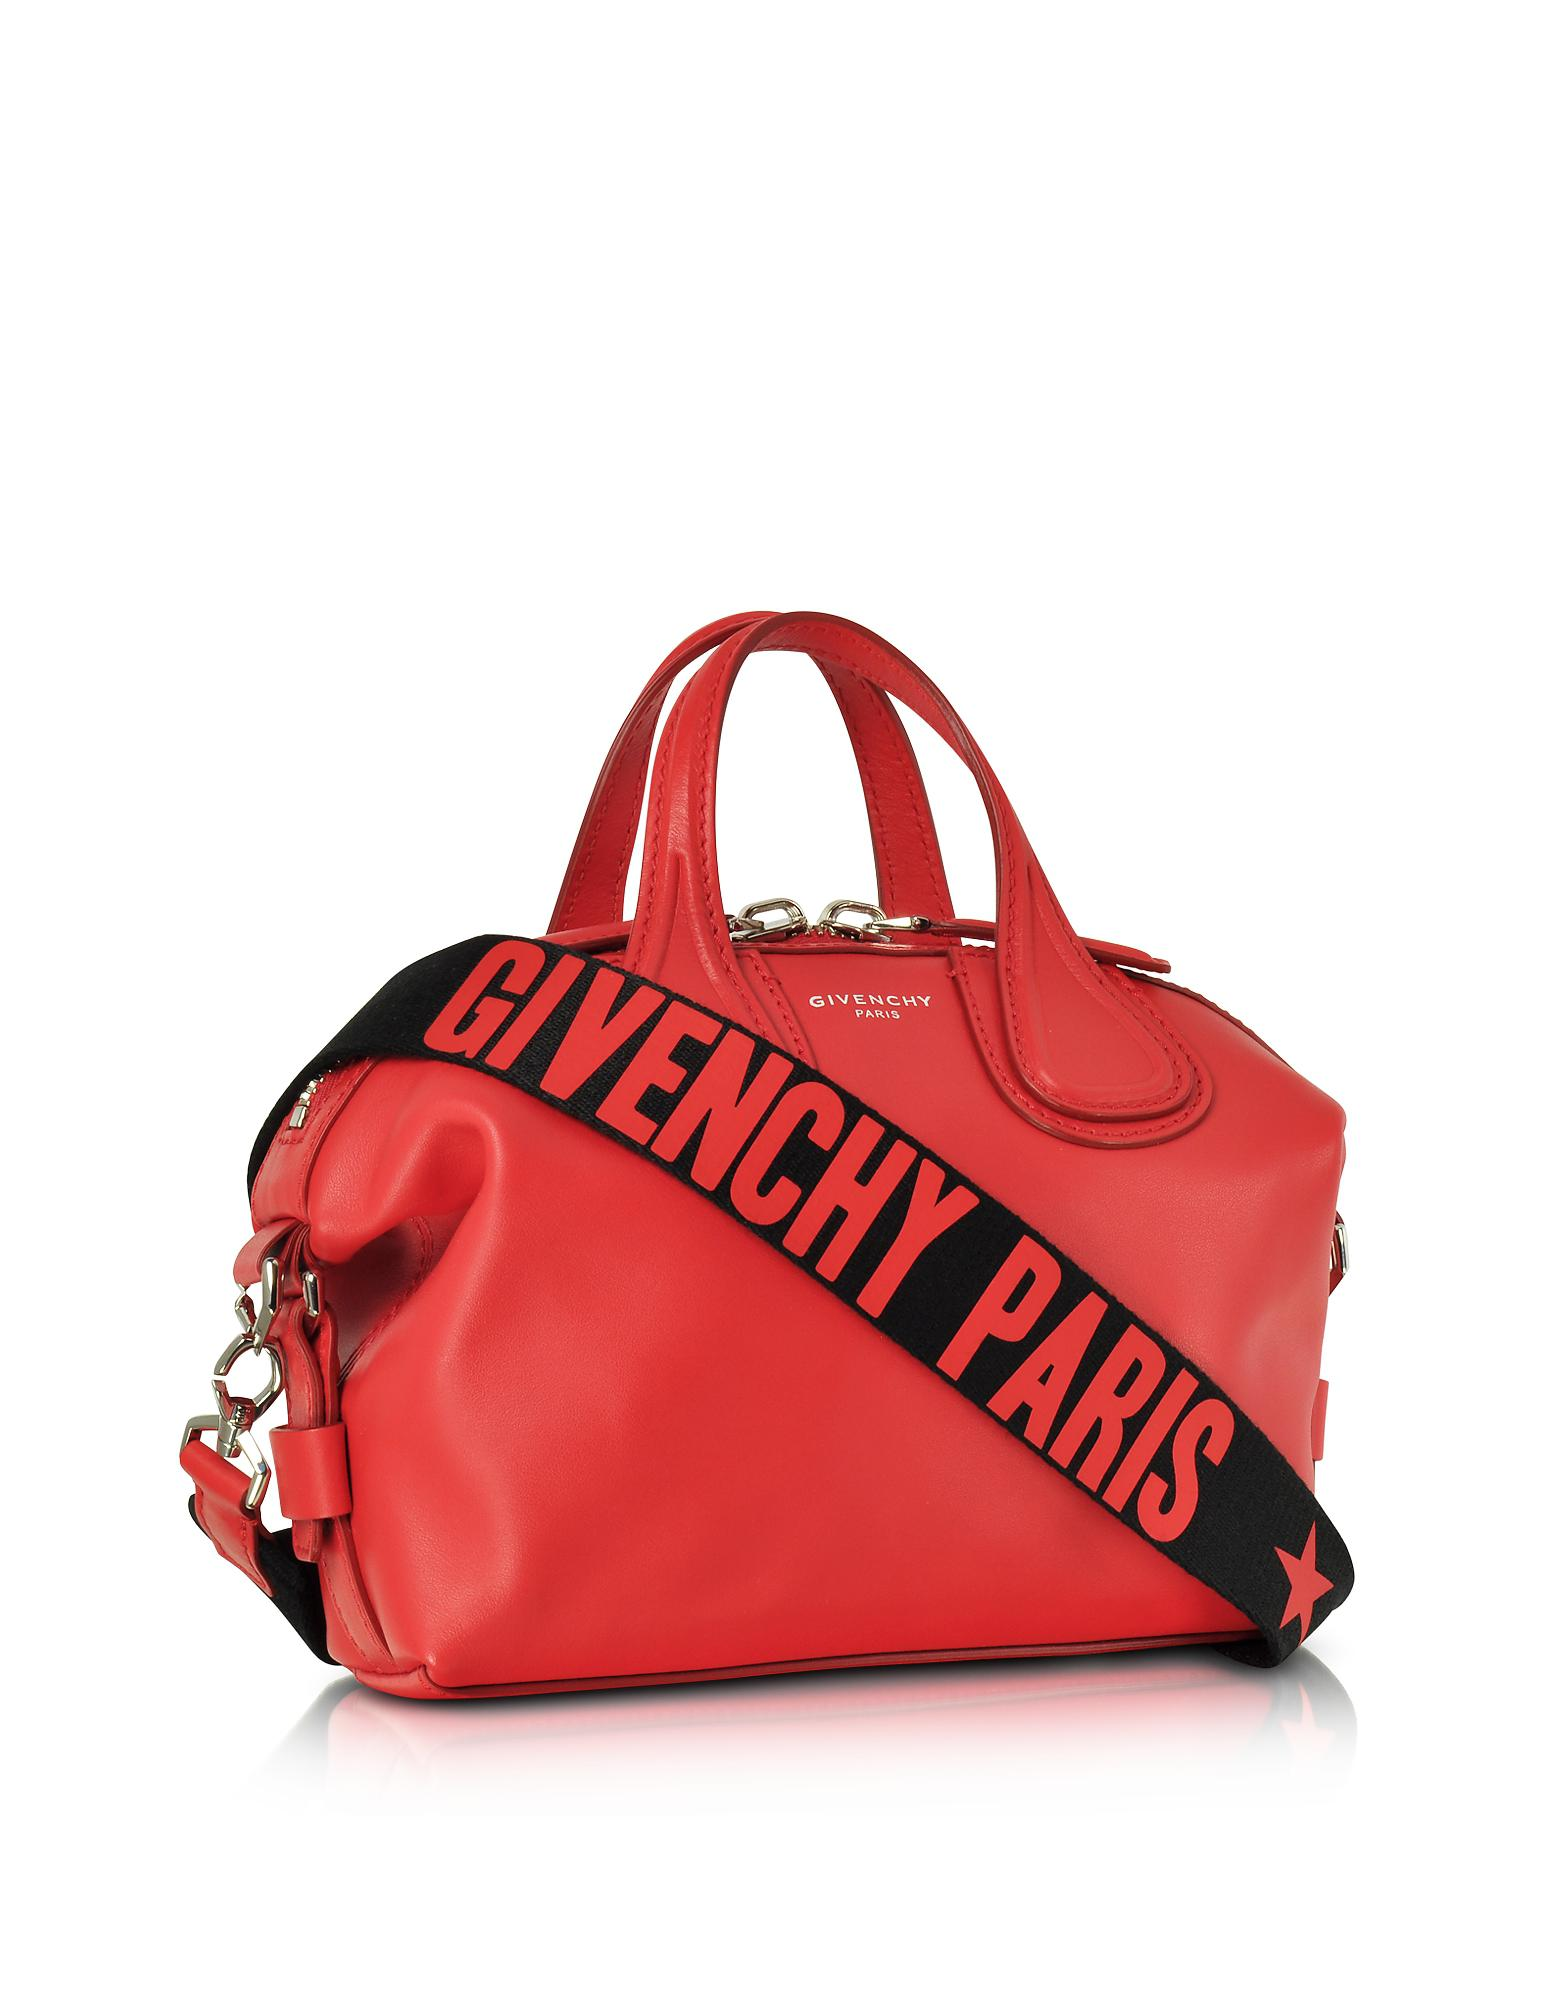 07822b53cb2f8 Lyst - Givenchy Red Leather Small Nightingale Satchel Bag .